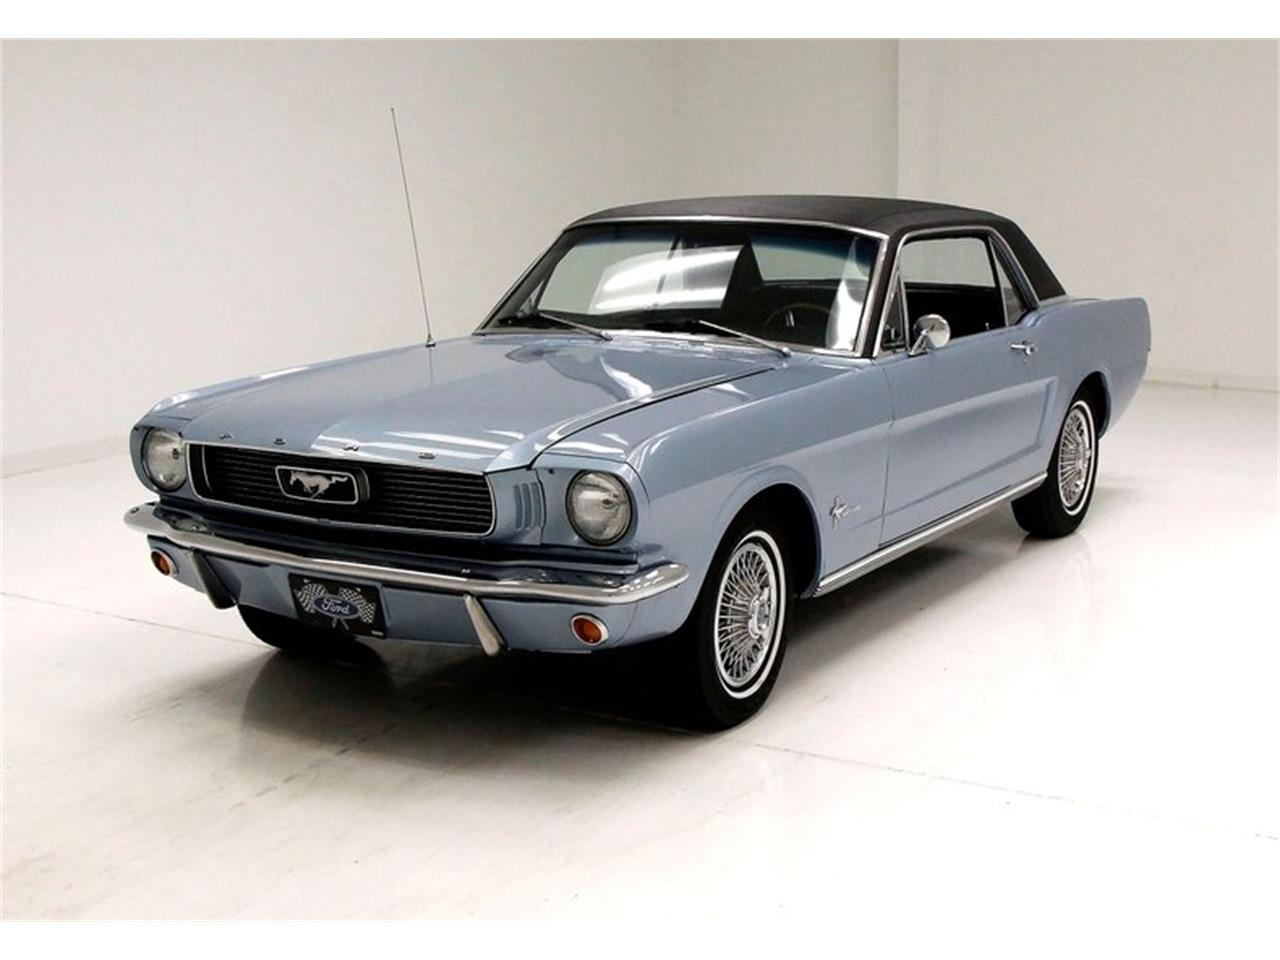 For Sale: 1966 Ford Mustang in Morgantown, Pennsylvania